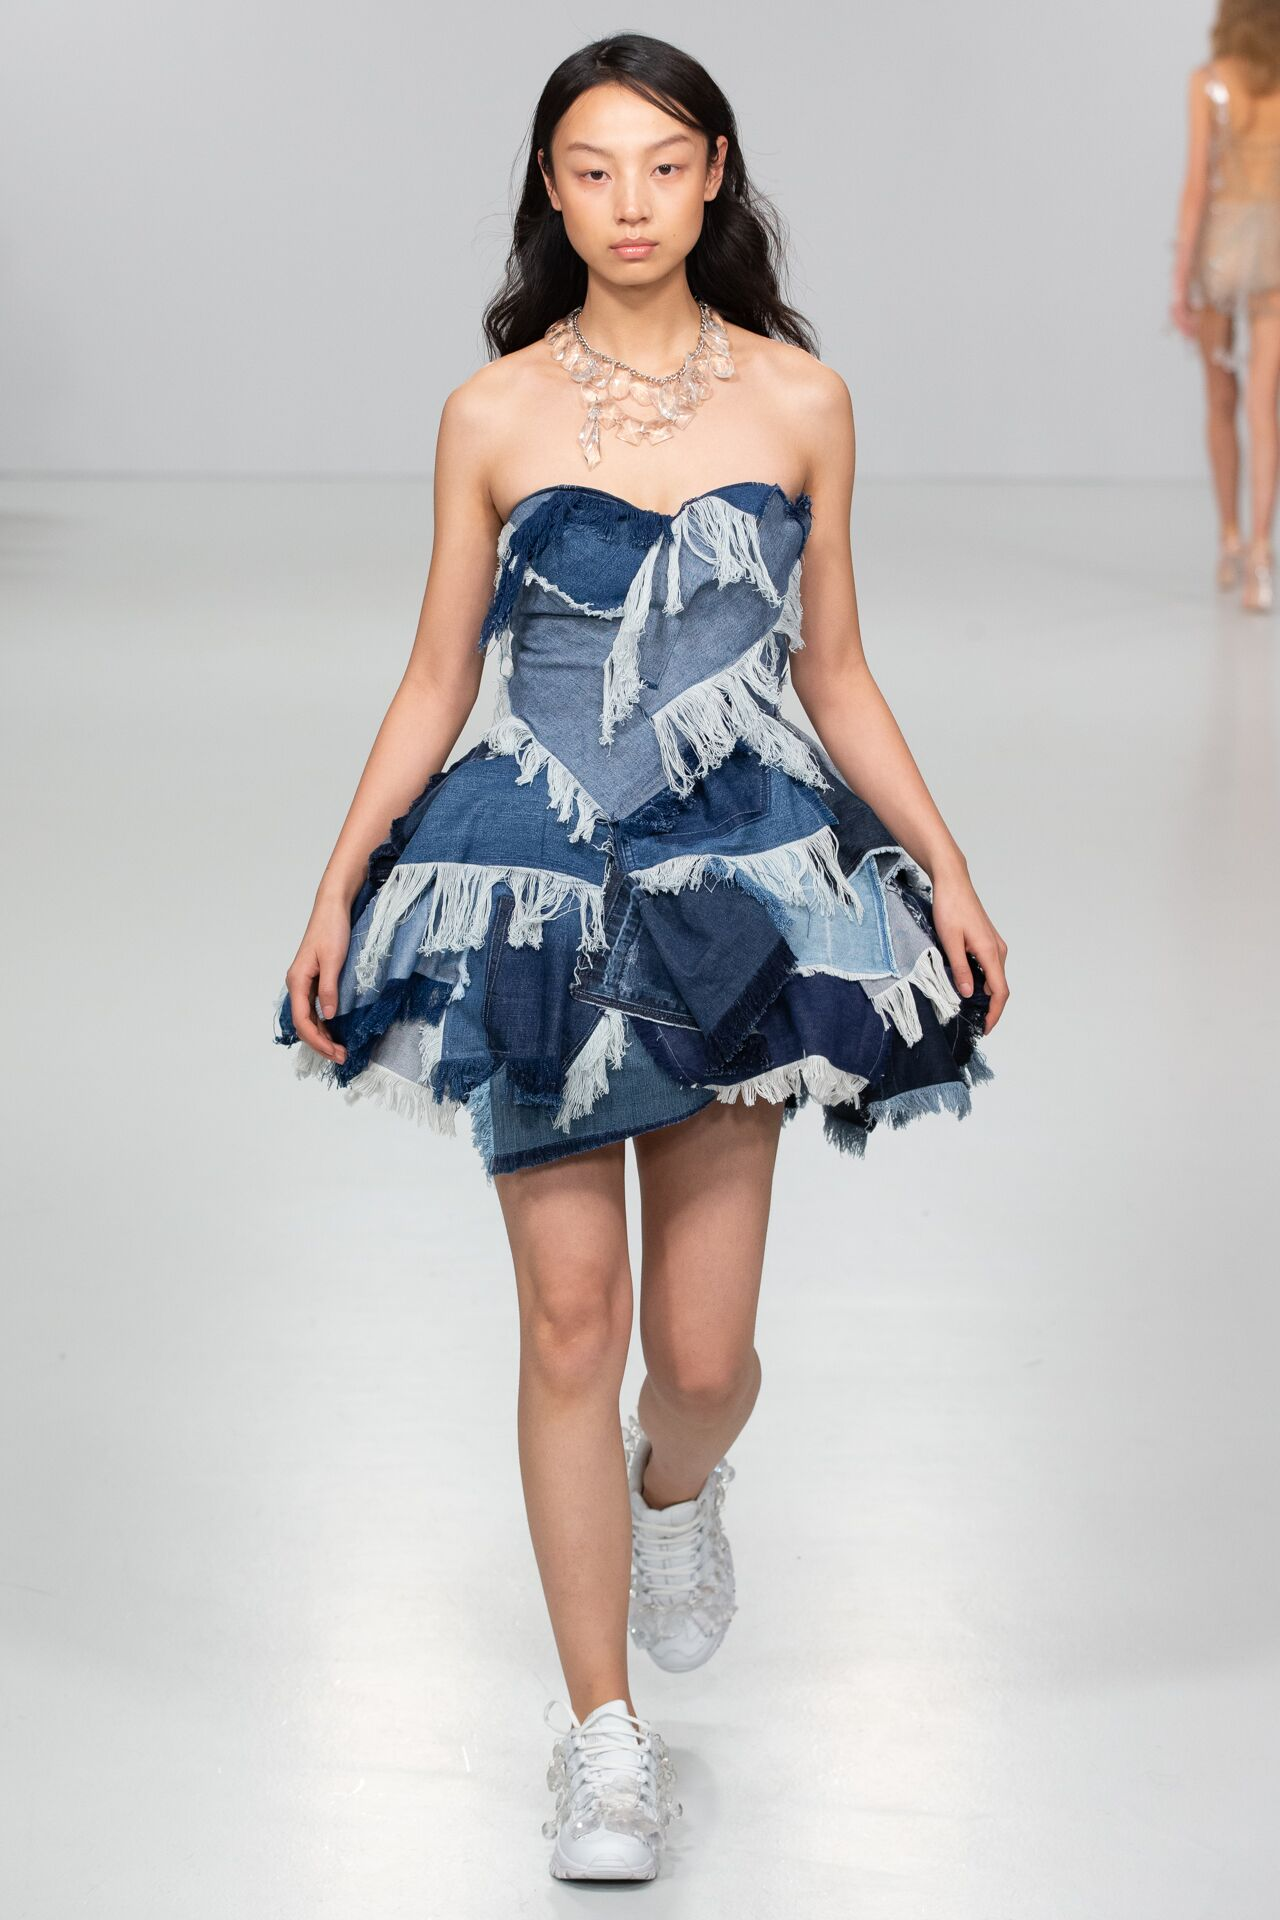 Manon planche aw20 during london fashion week (7)